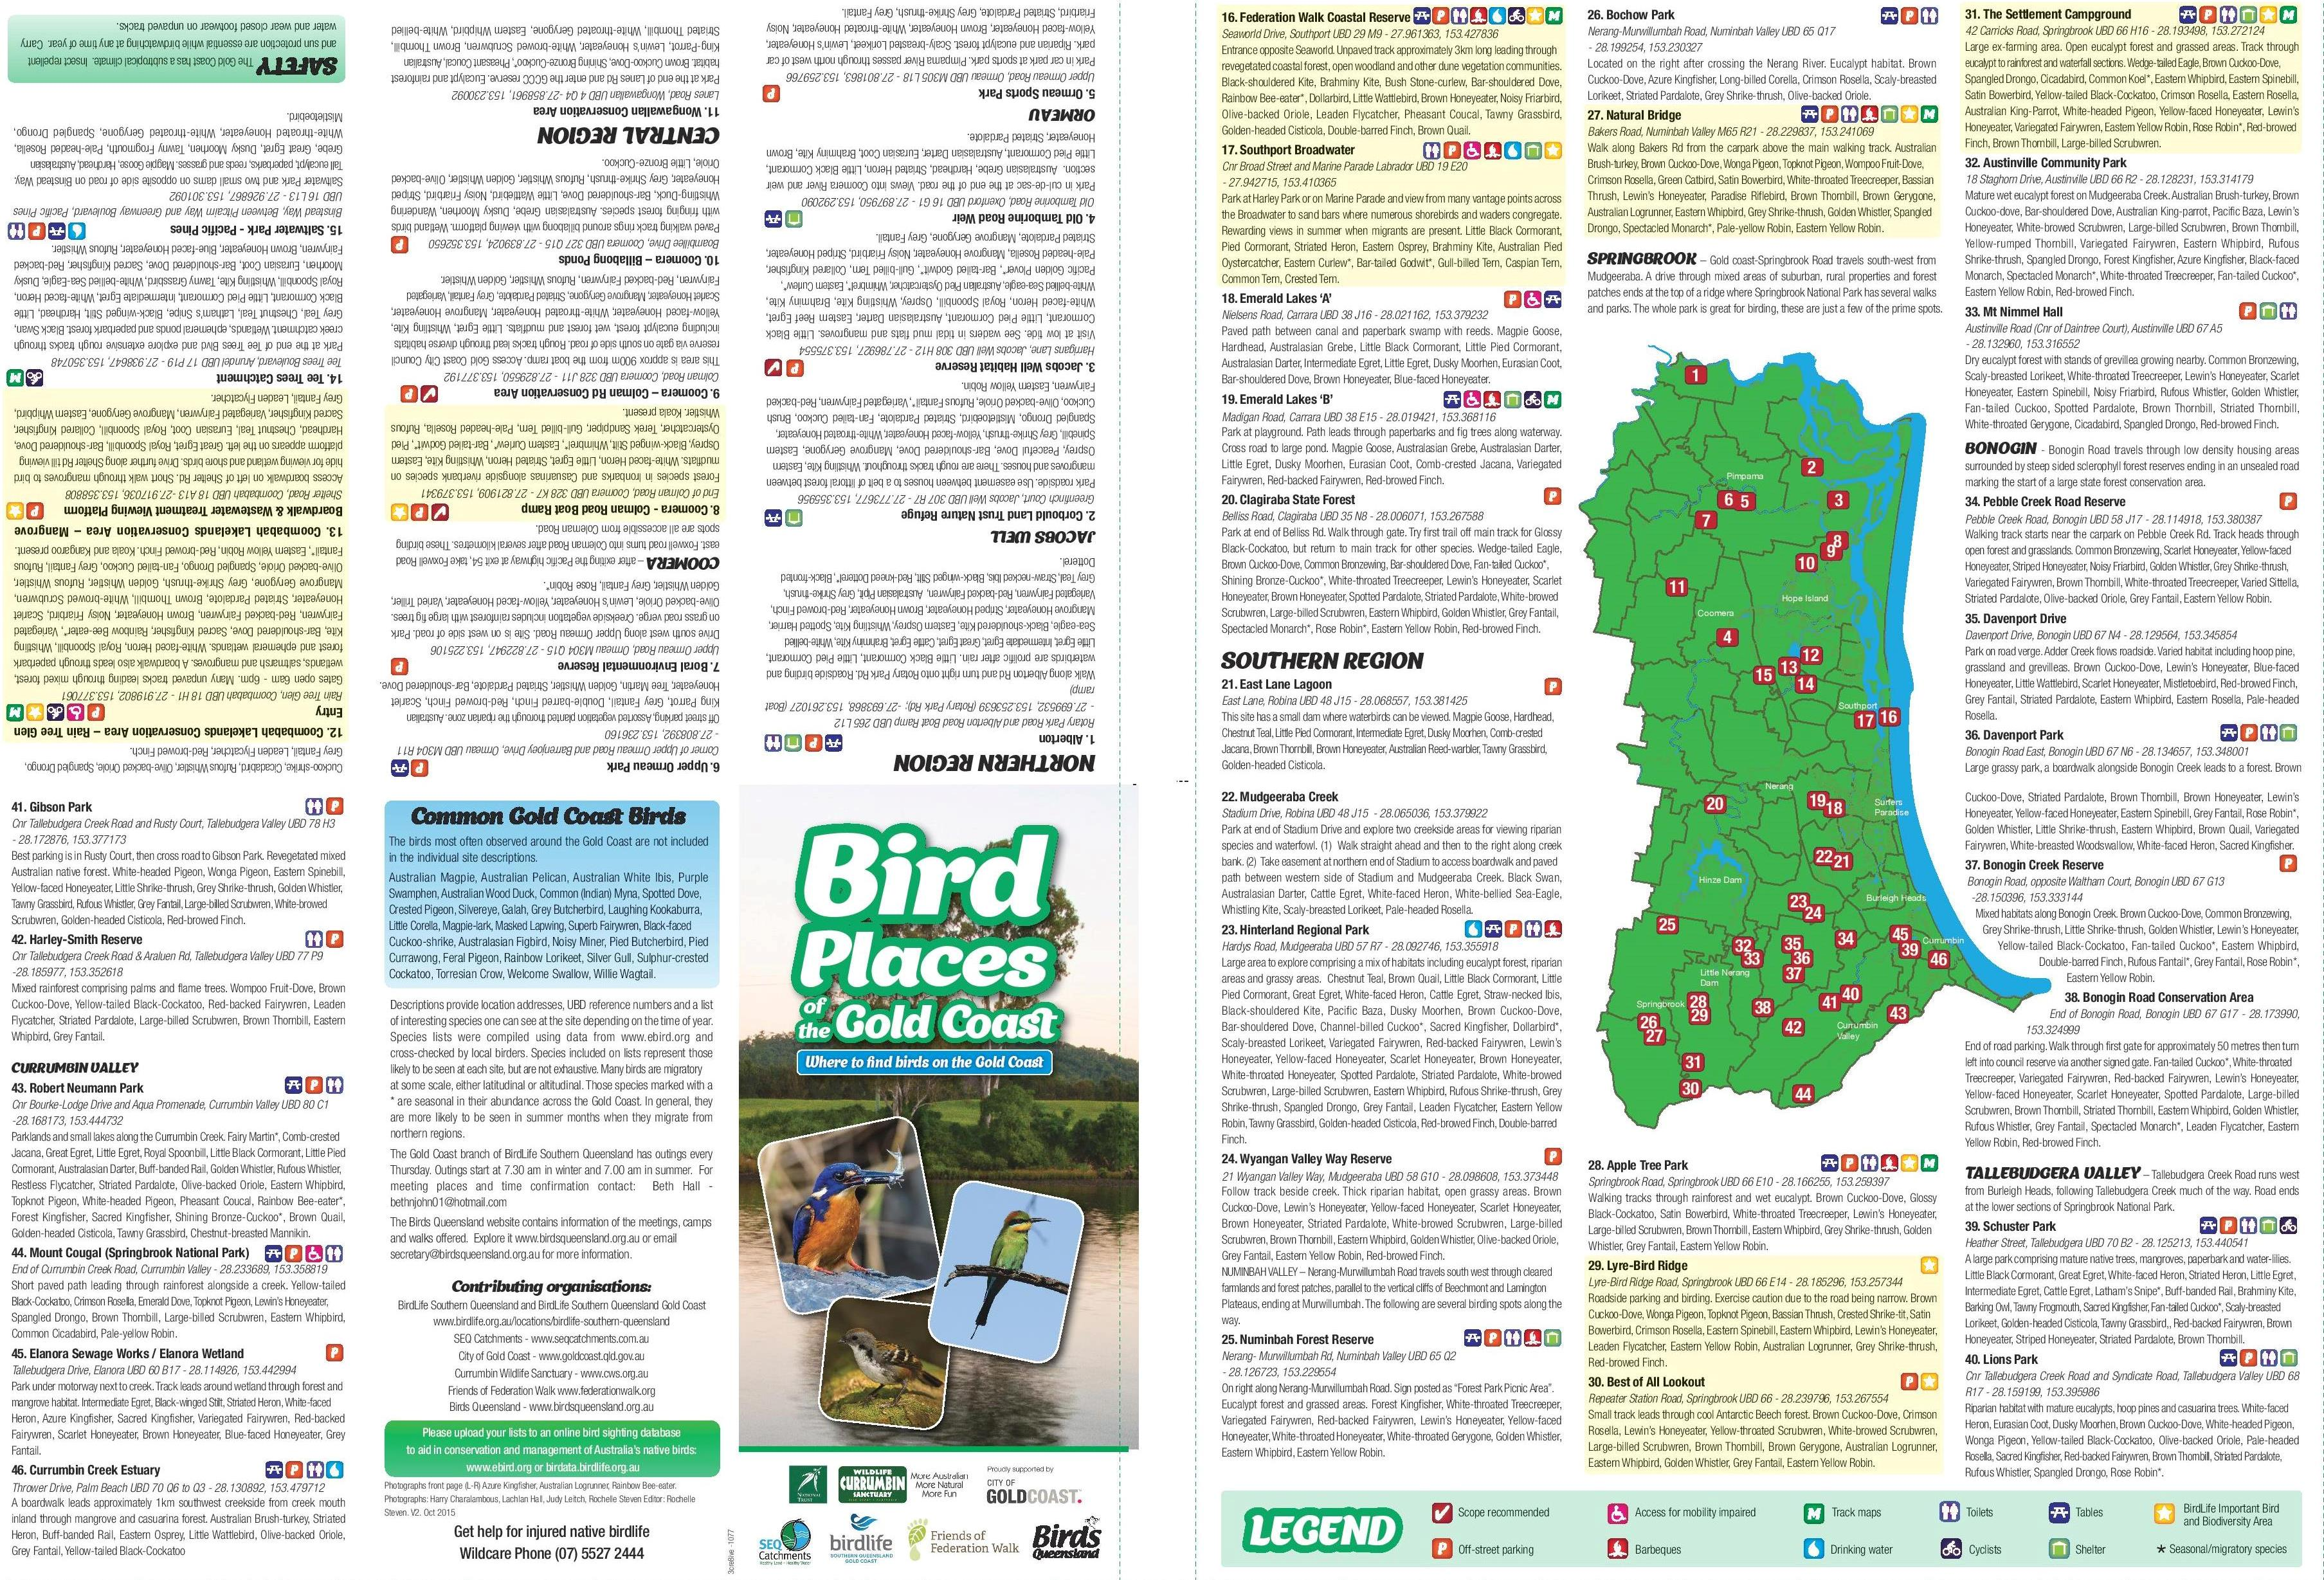 54492_Bird Places of the Gold Coast 2016-page-001